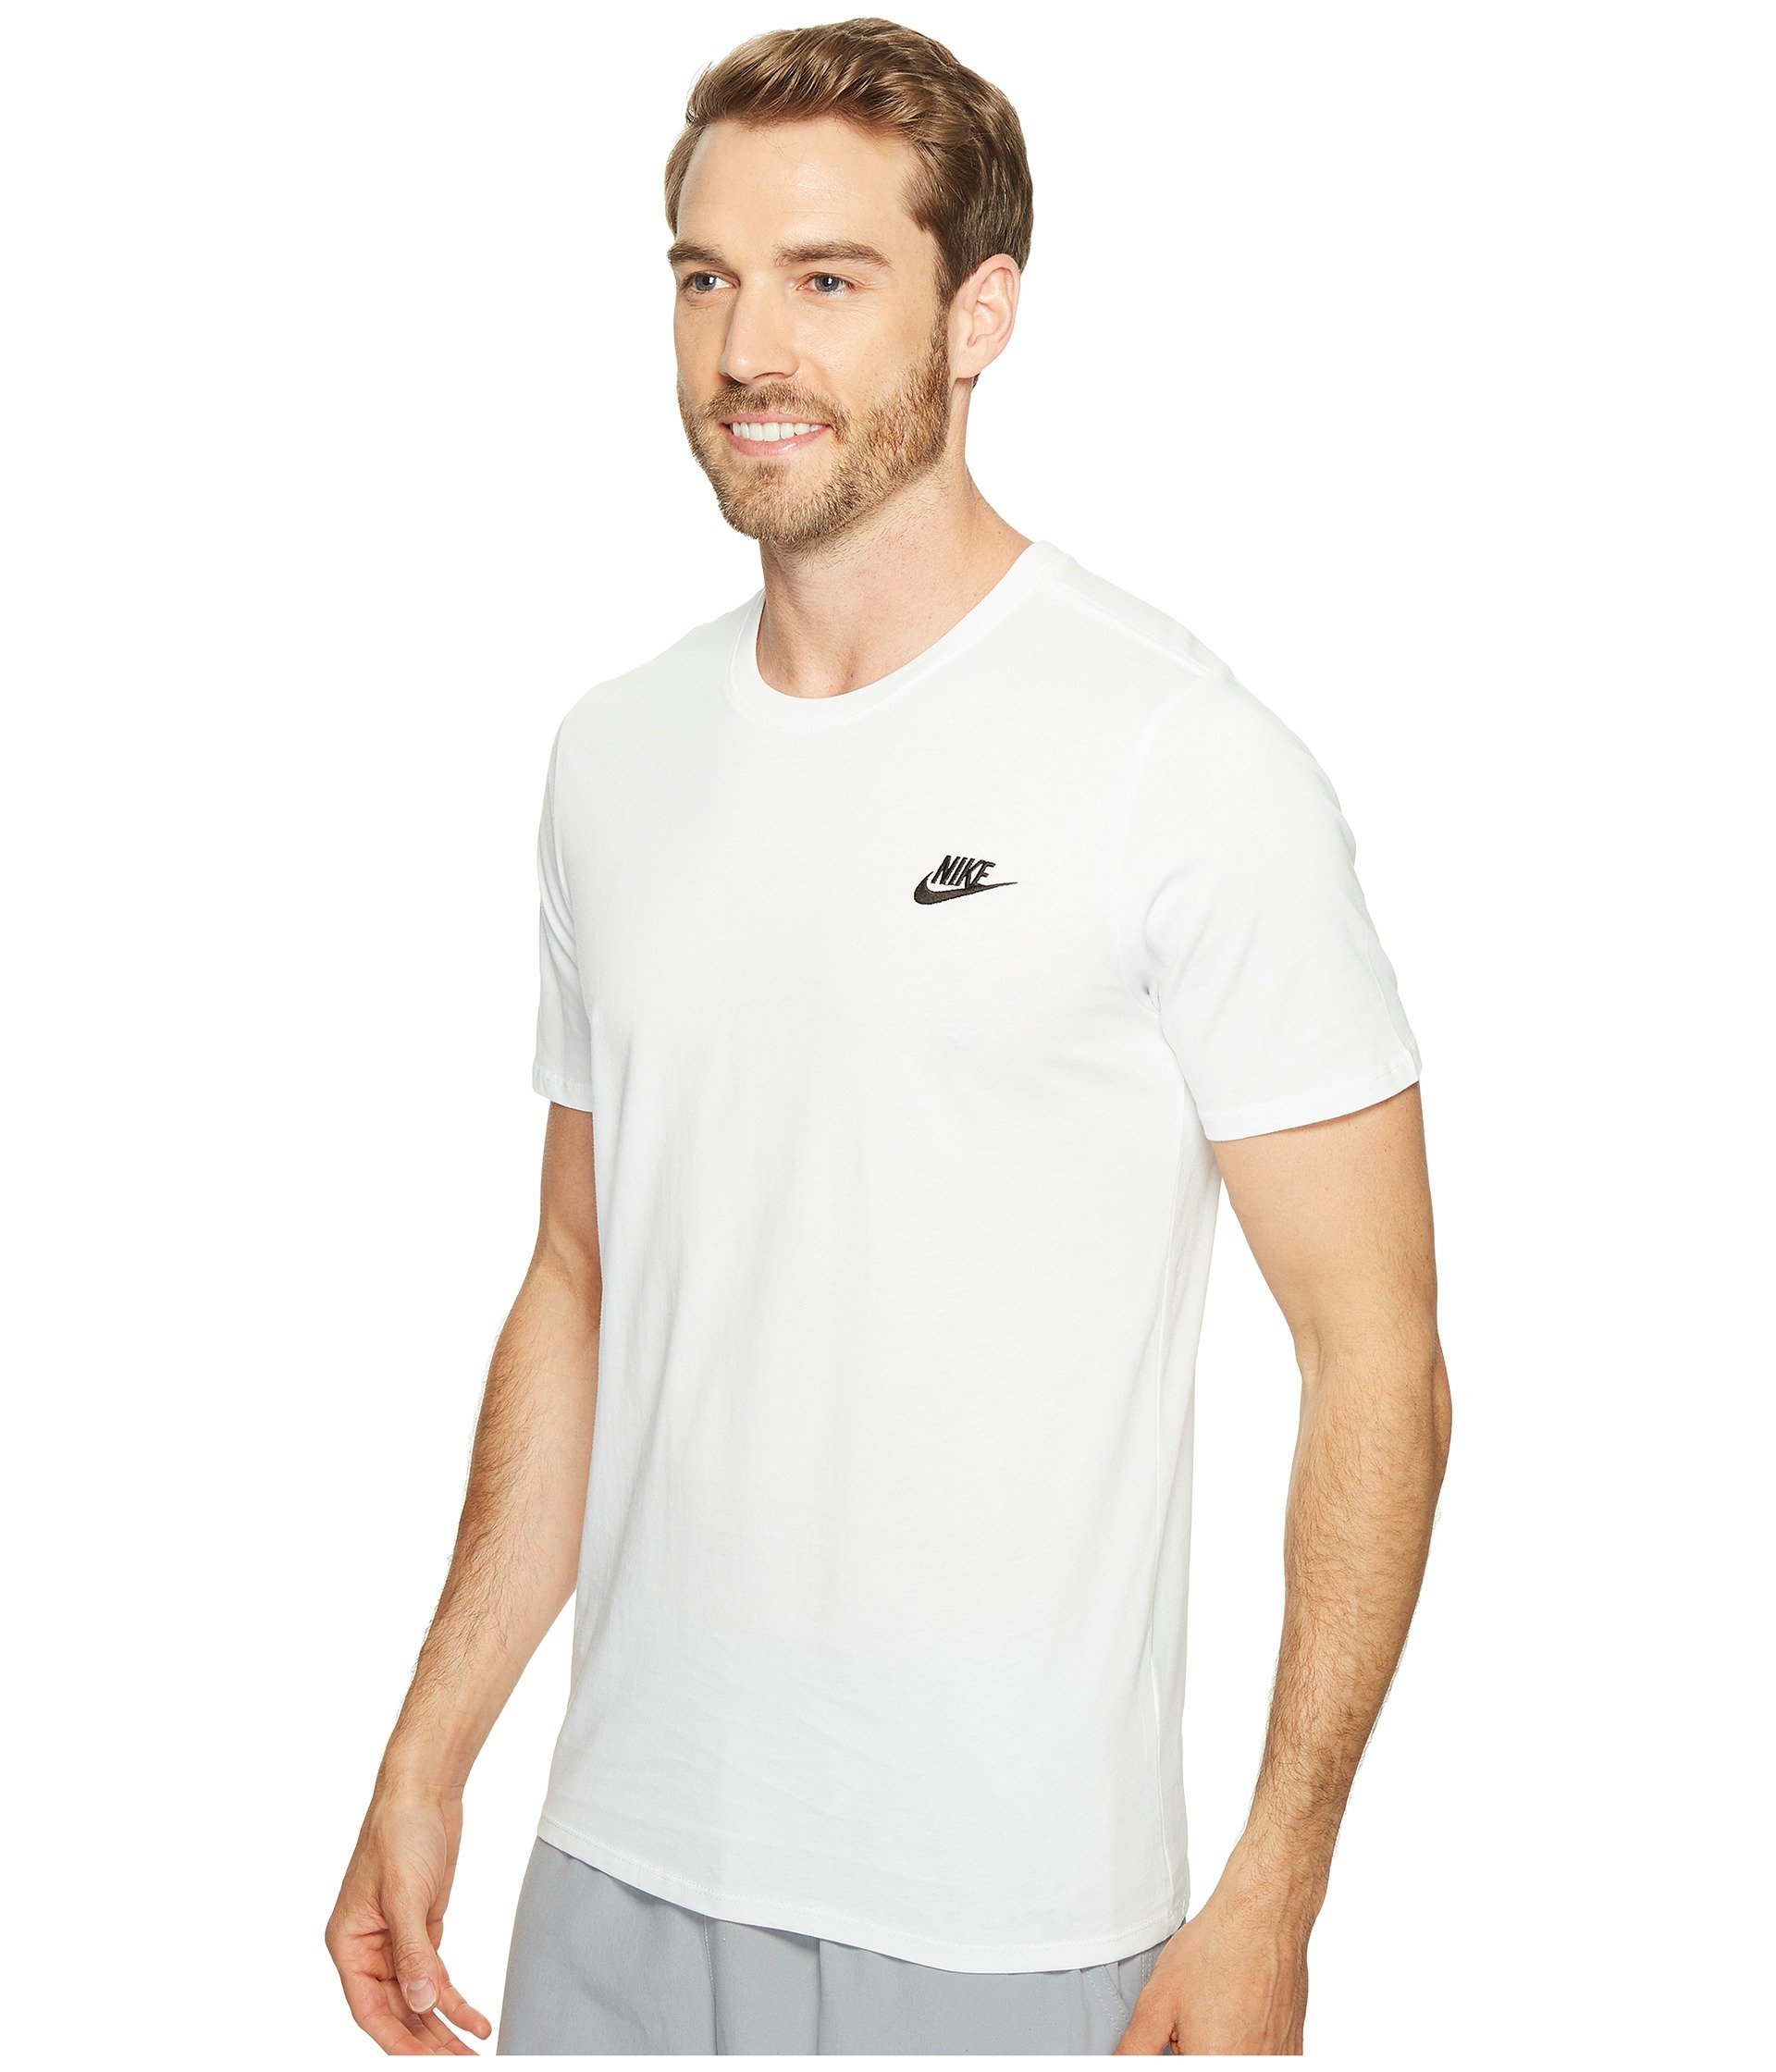 Nike Futura Core Embroidered Tee white White black wqTwREr